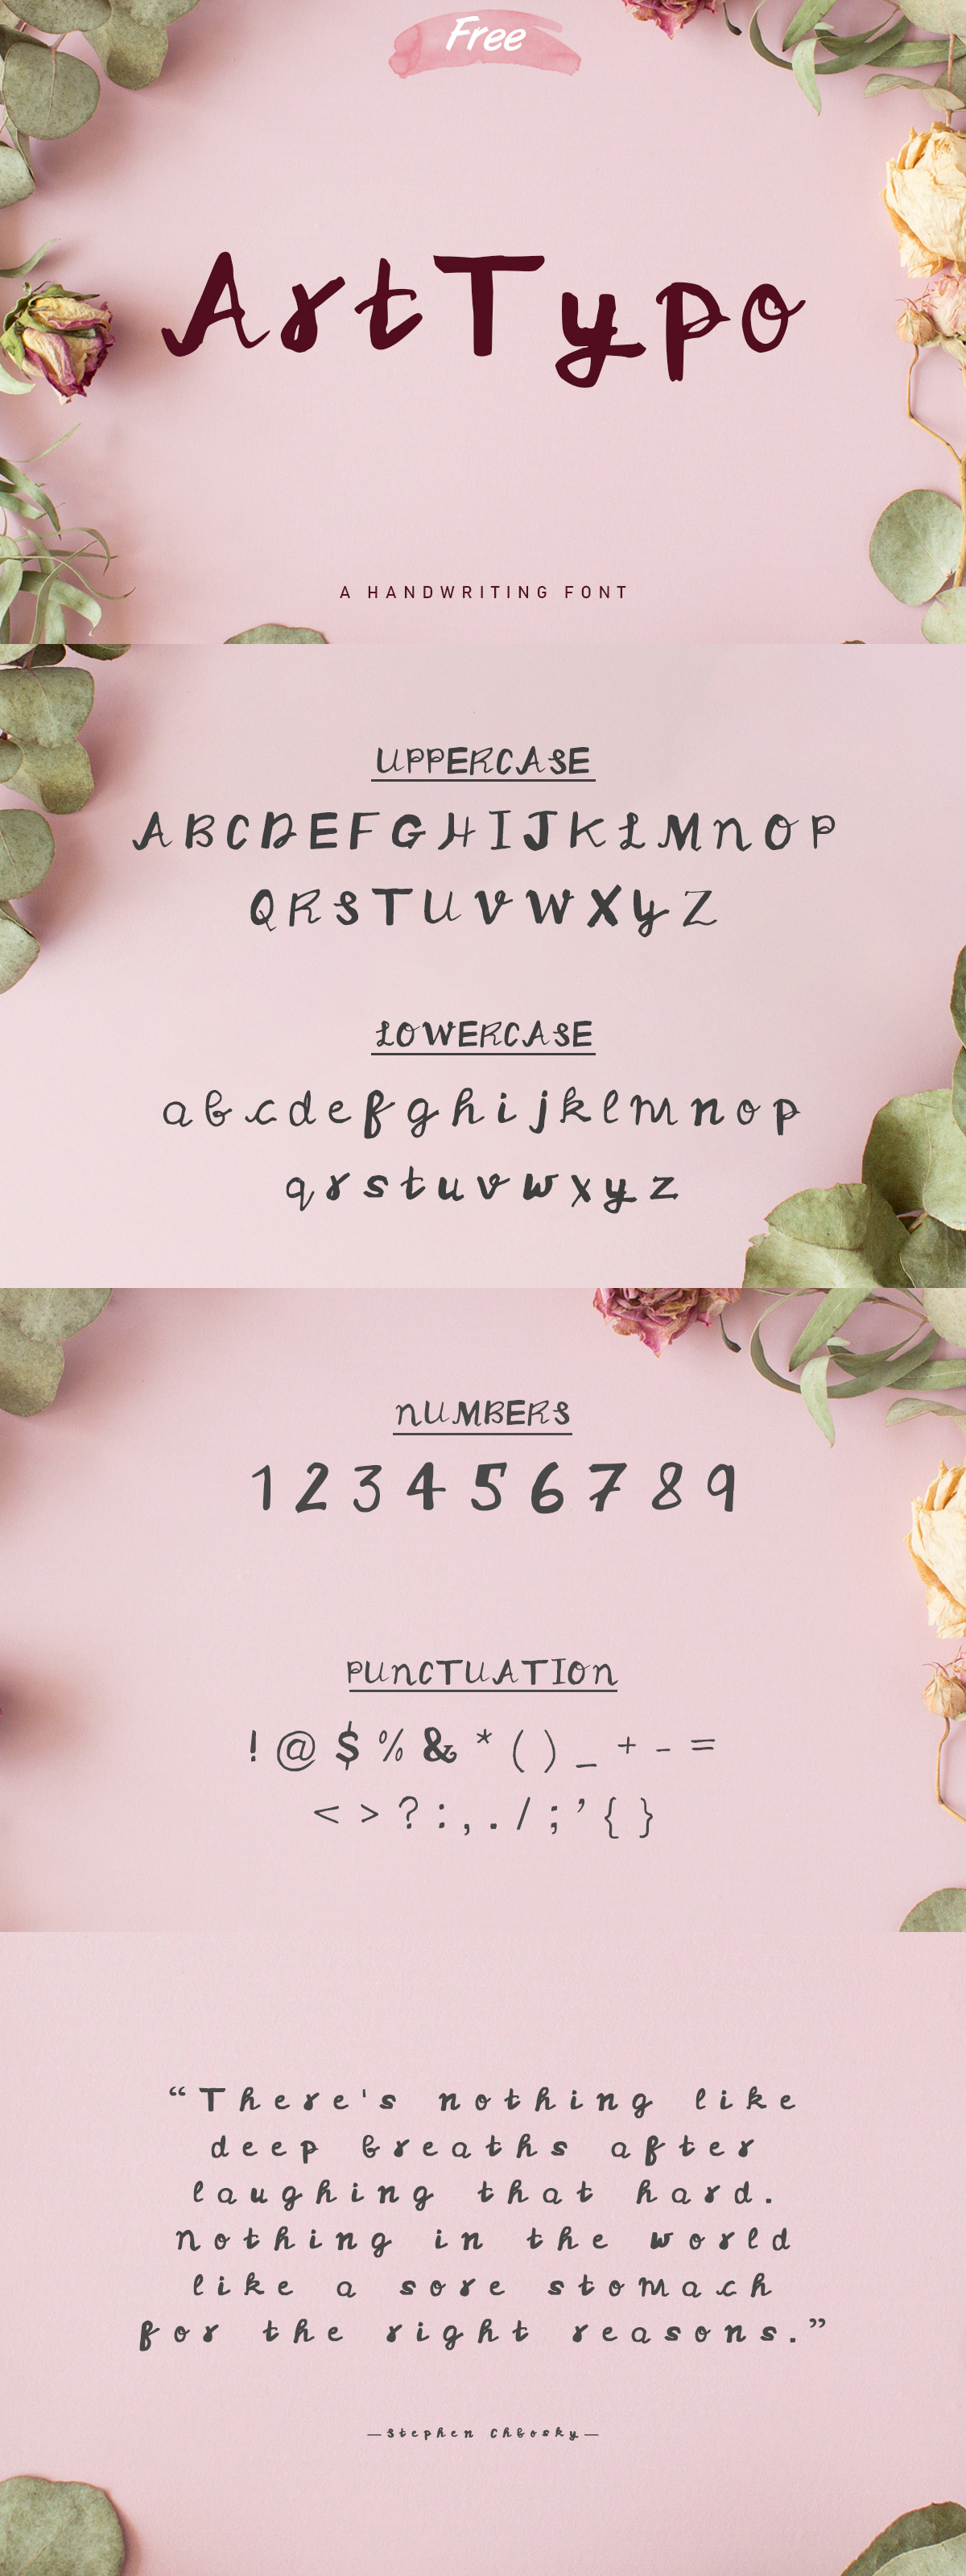 Free Art Typo Handwriting Font